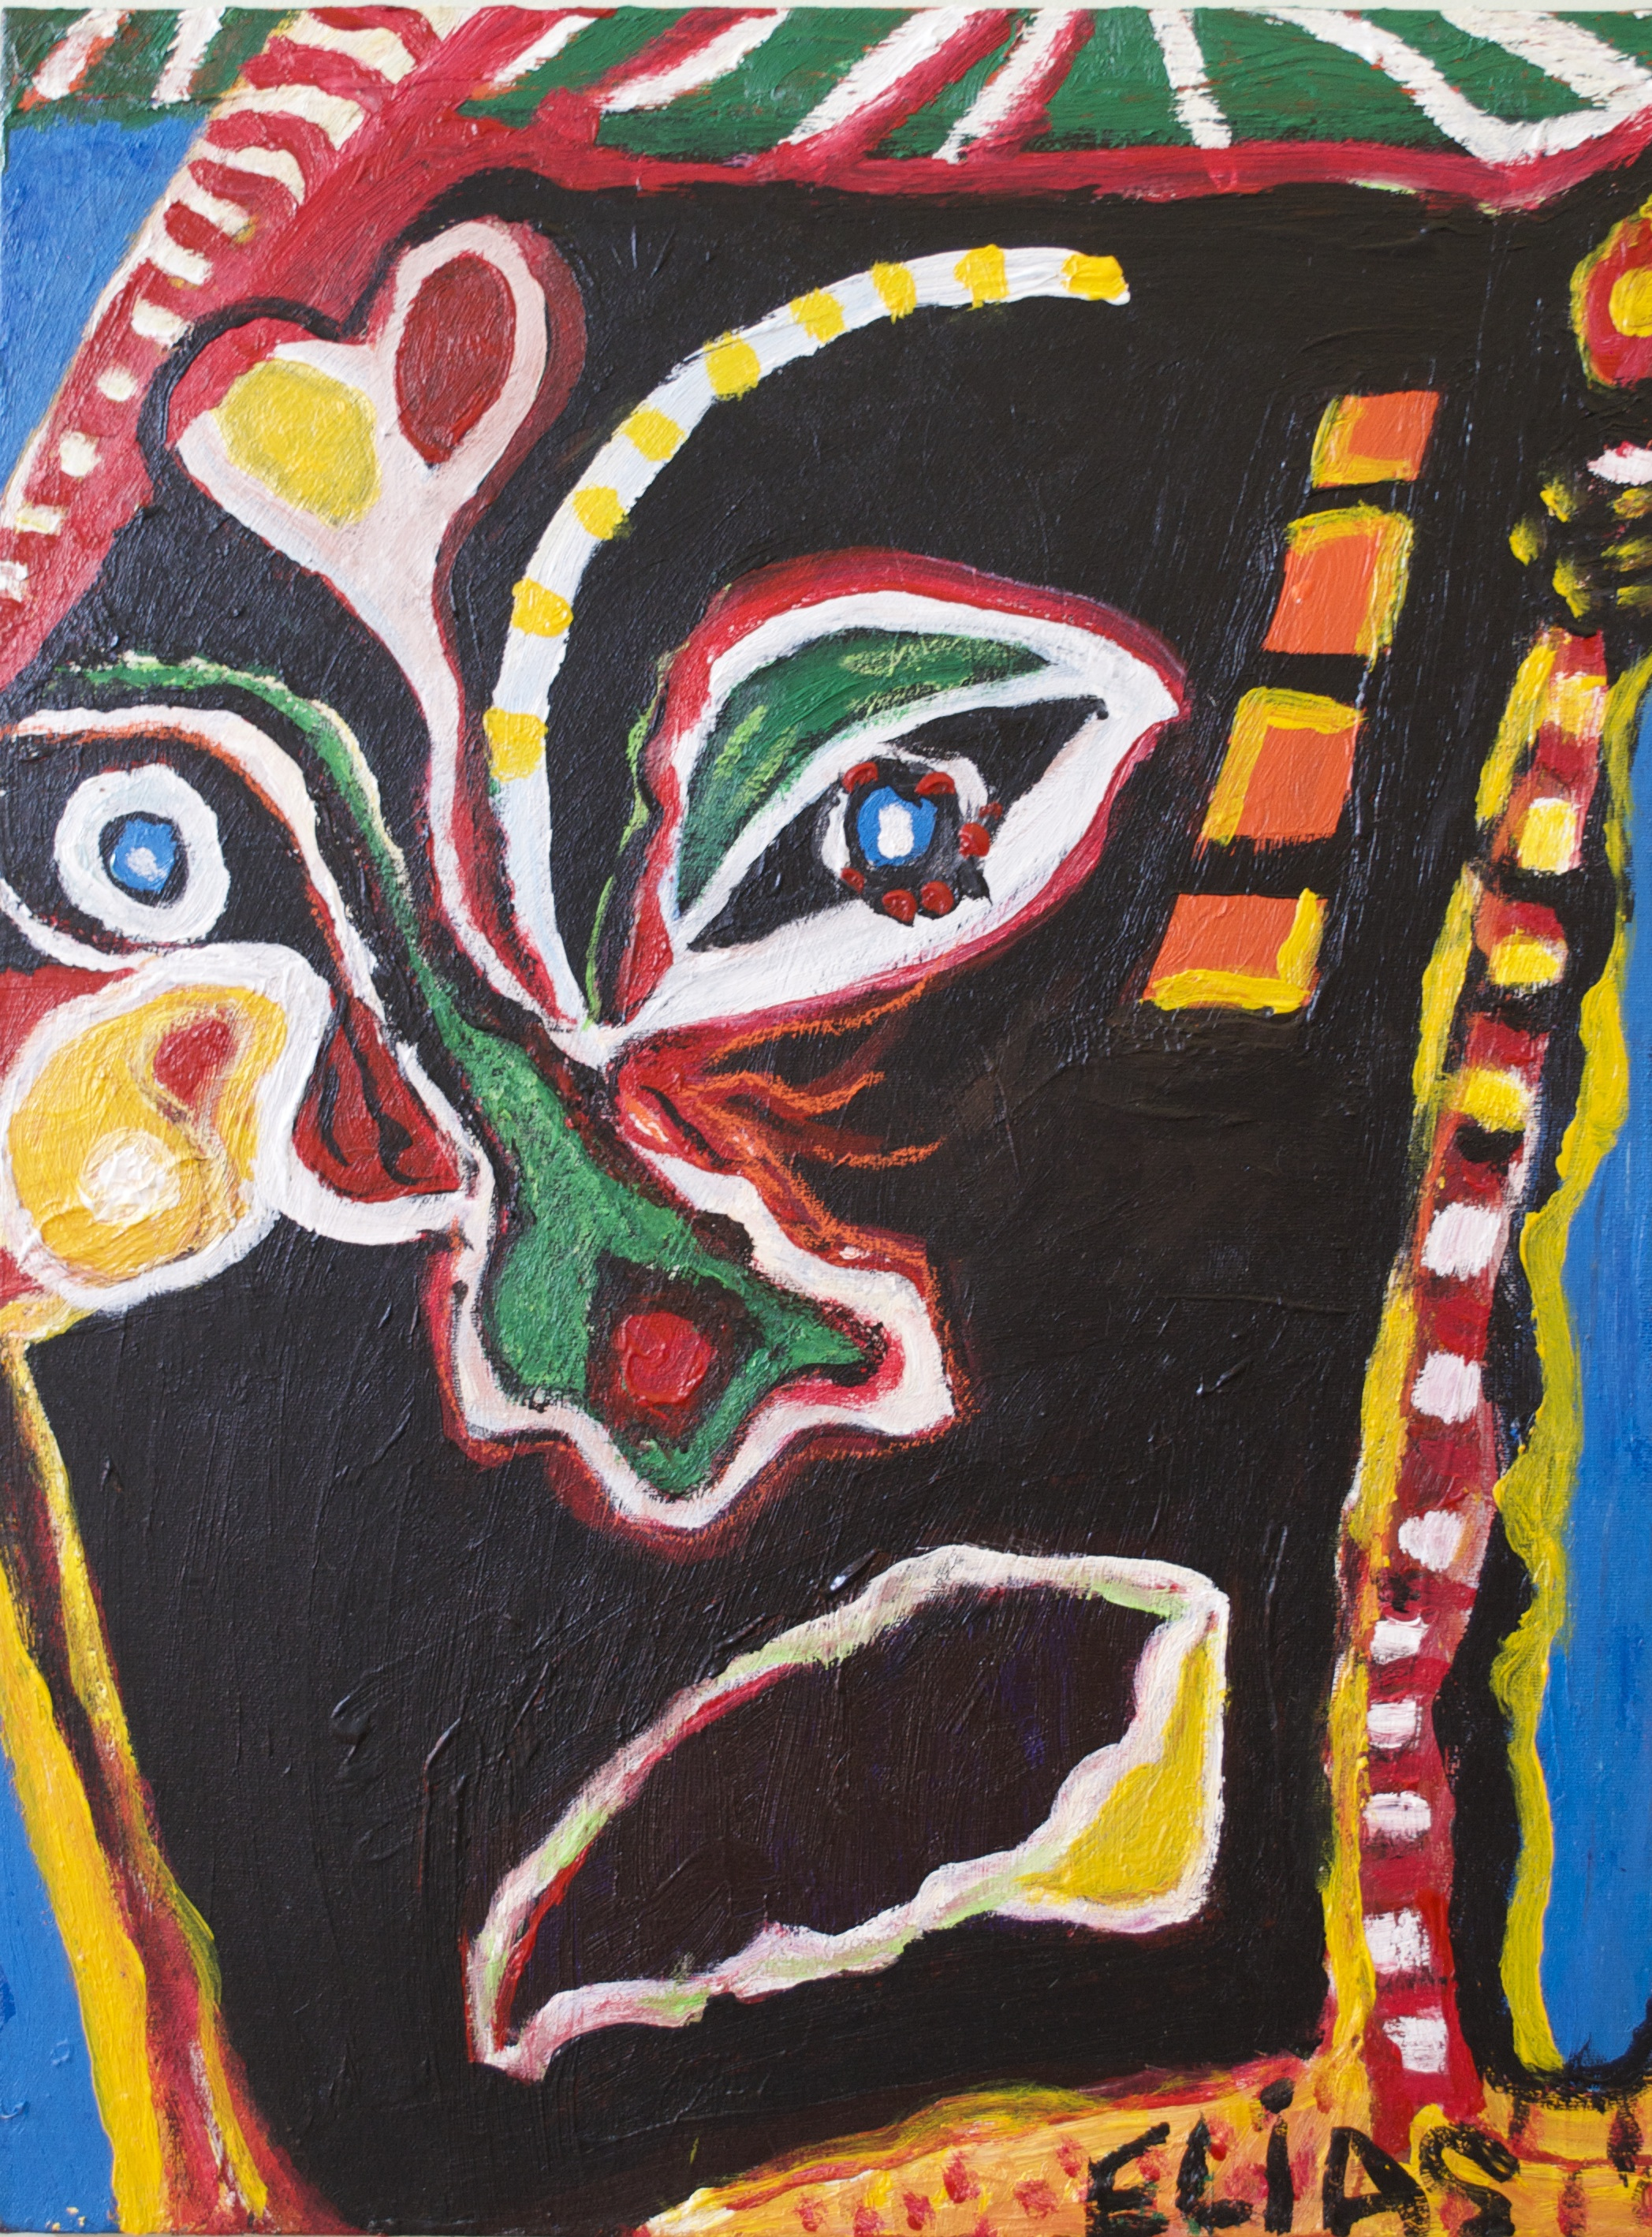 Colourful painting of face